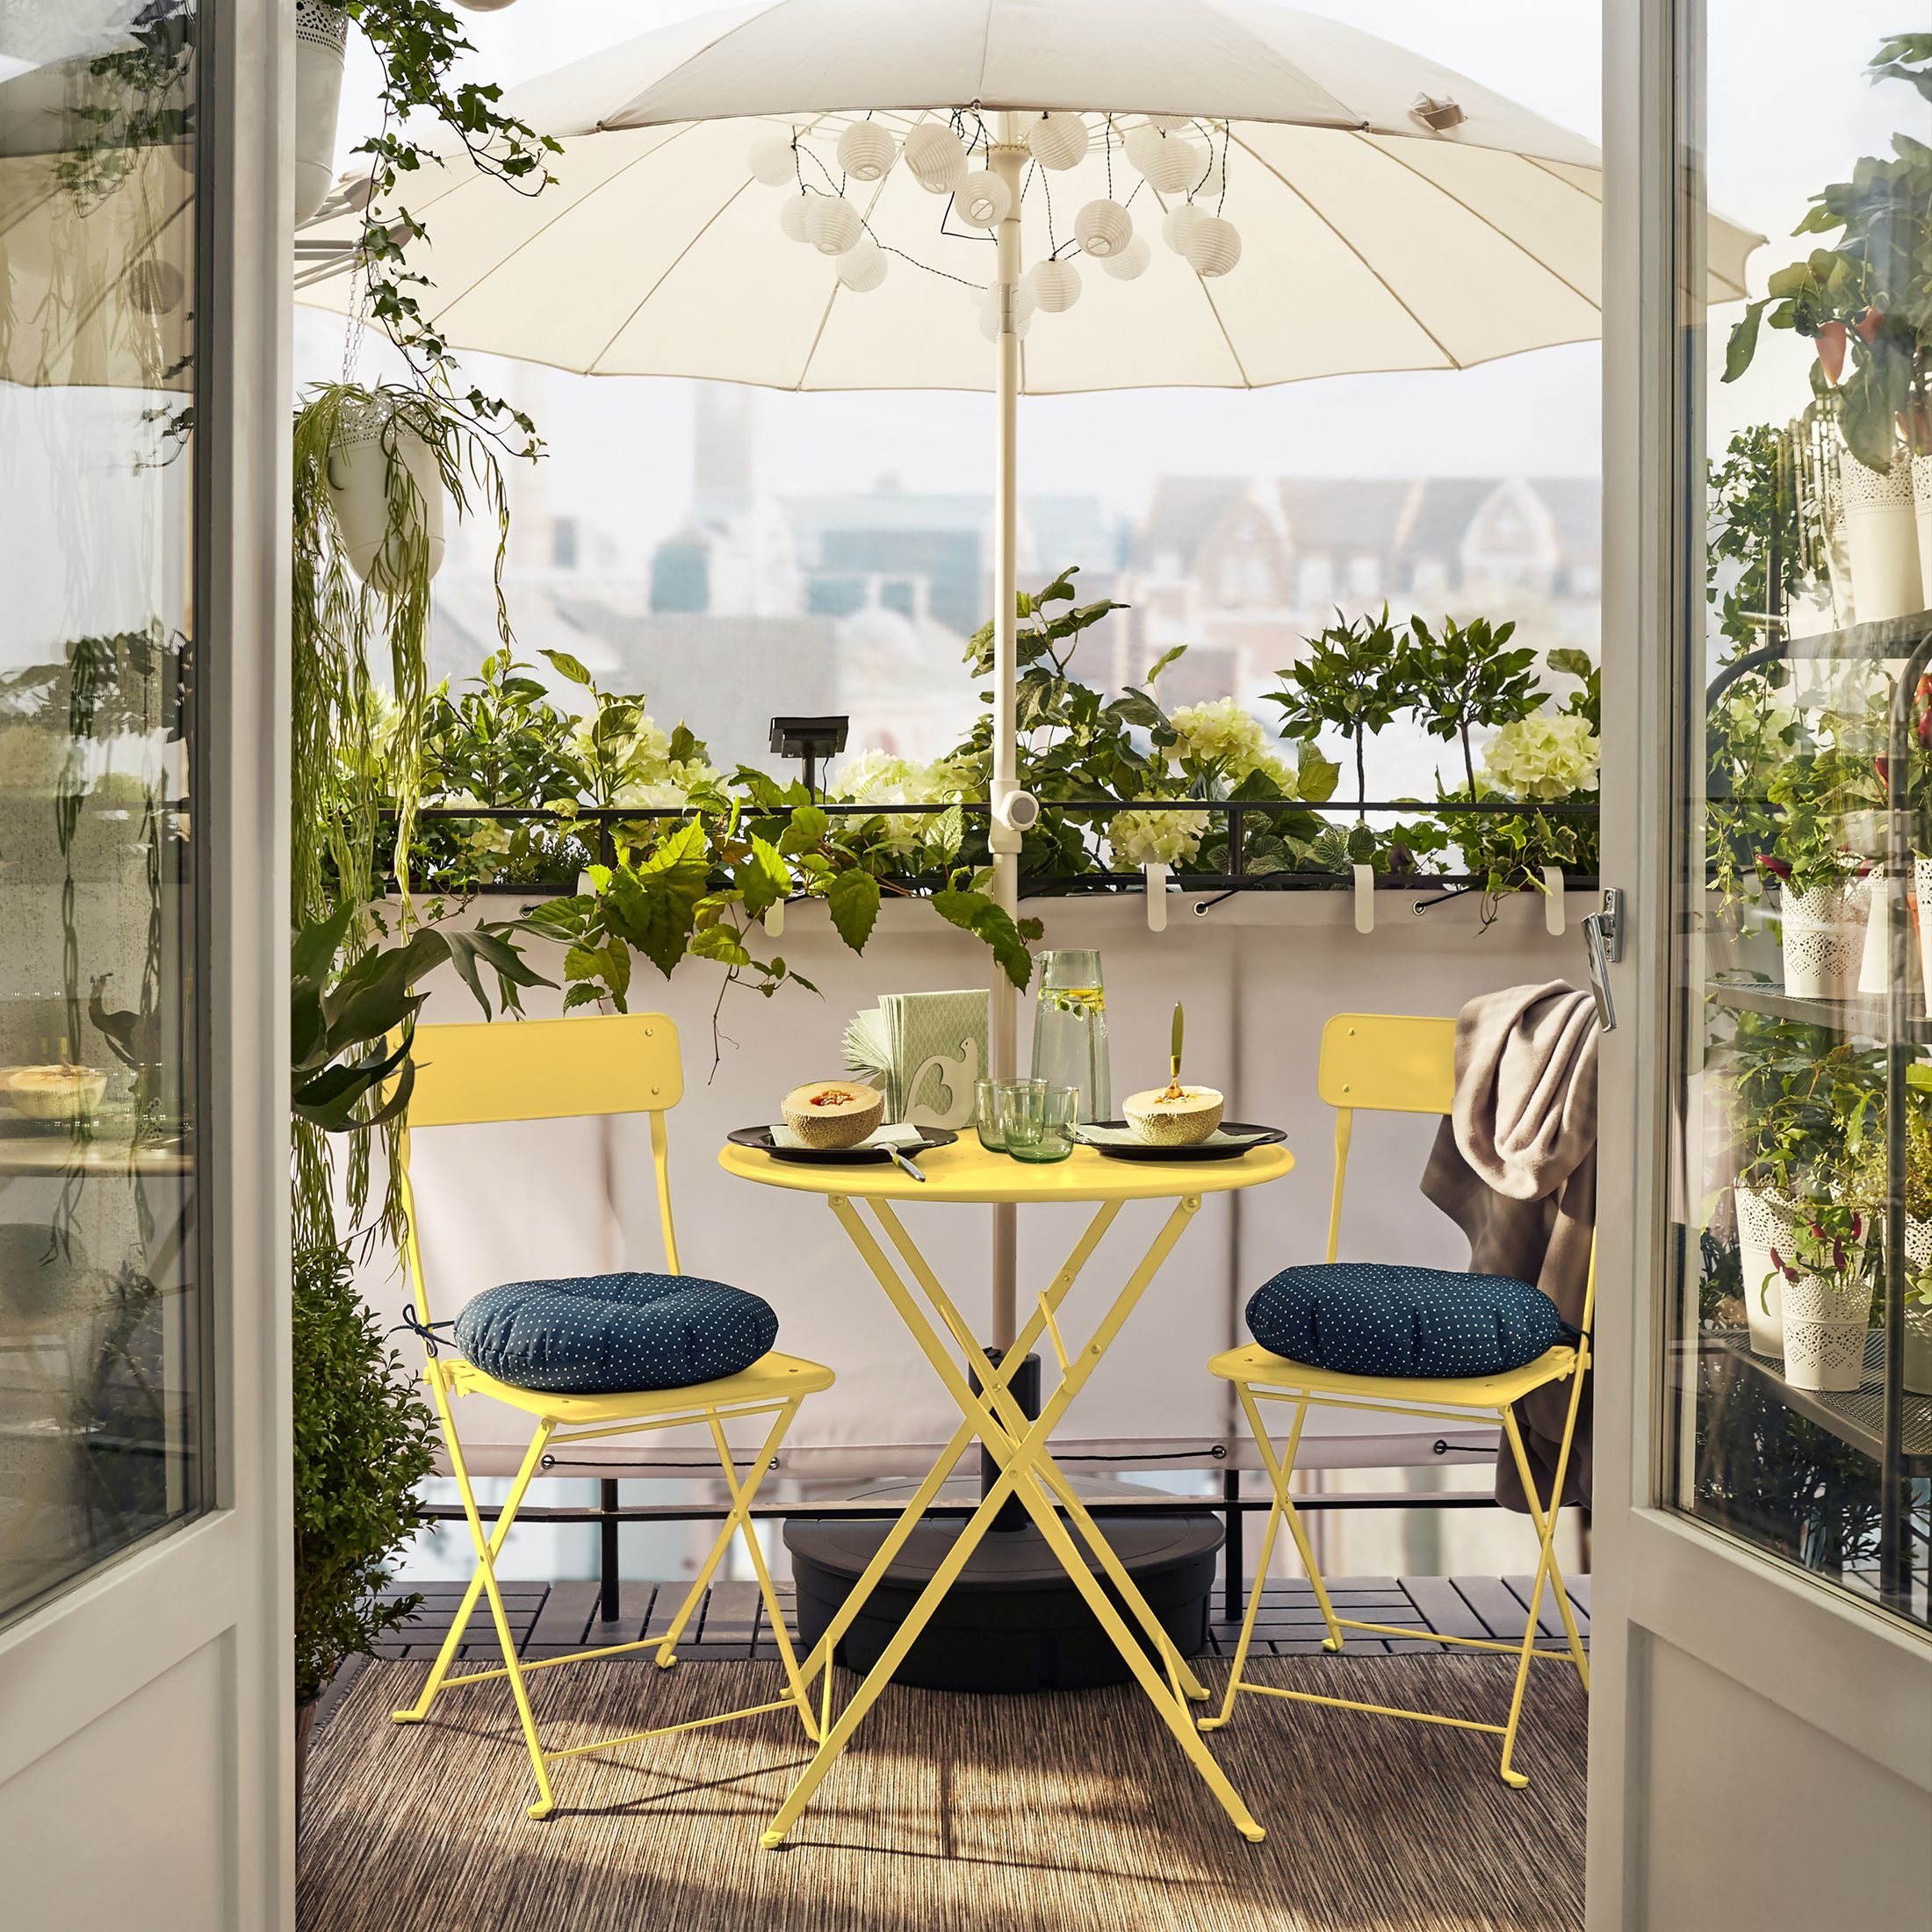 Charmant 8 Clever Balcony Furniture Pieces For Even The Smallest Of Spaces